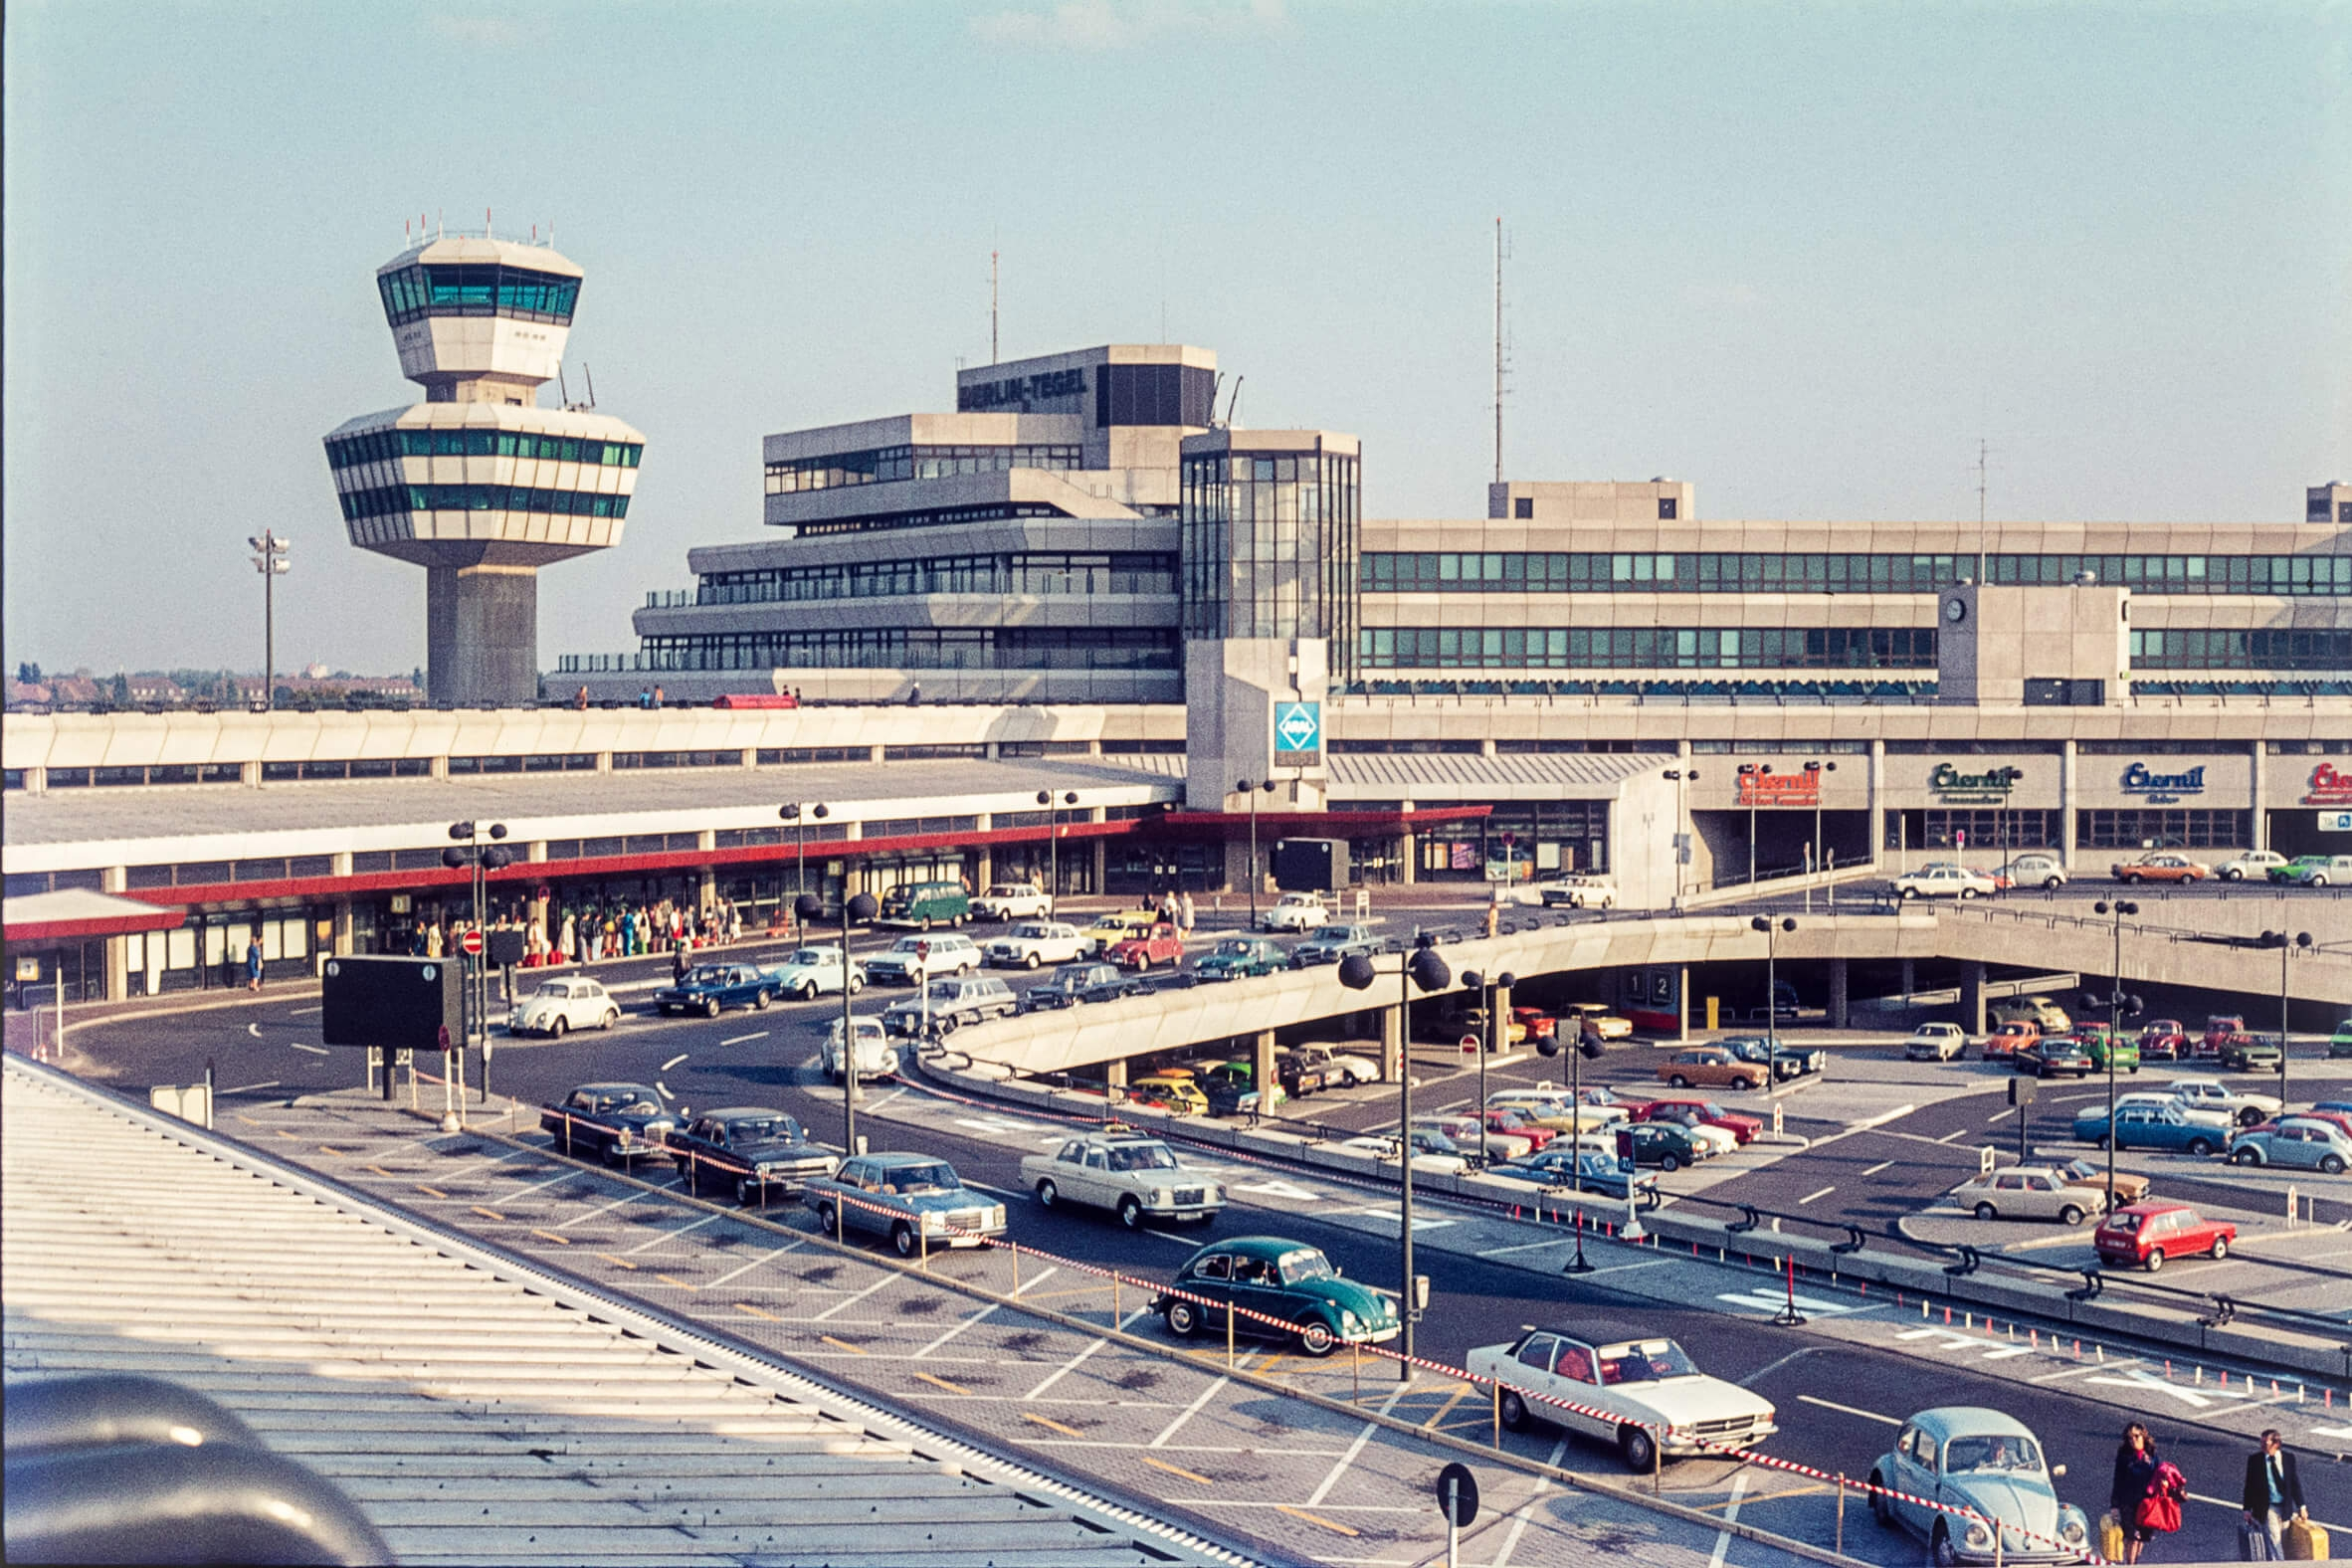 flughafen tegel photo book feature dezeen 2364 col 8